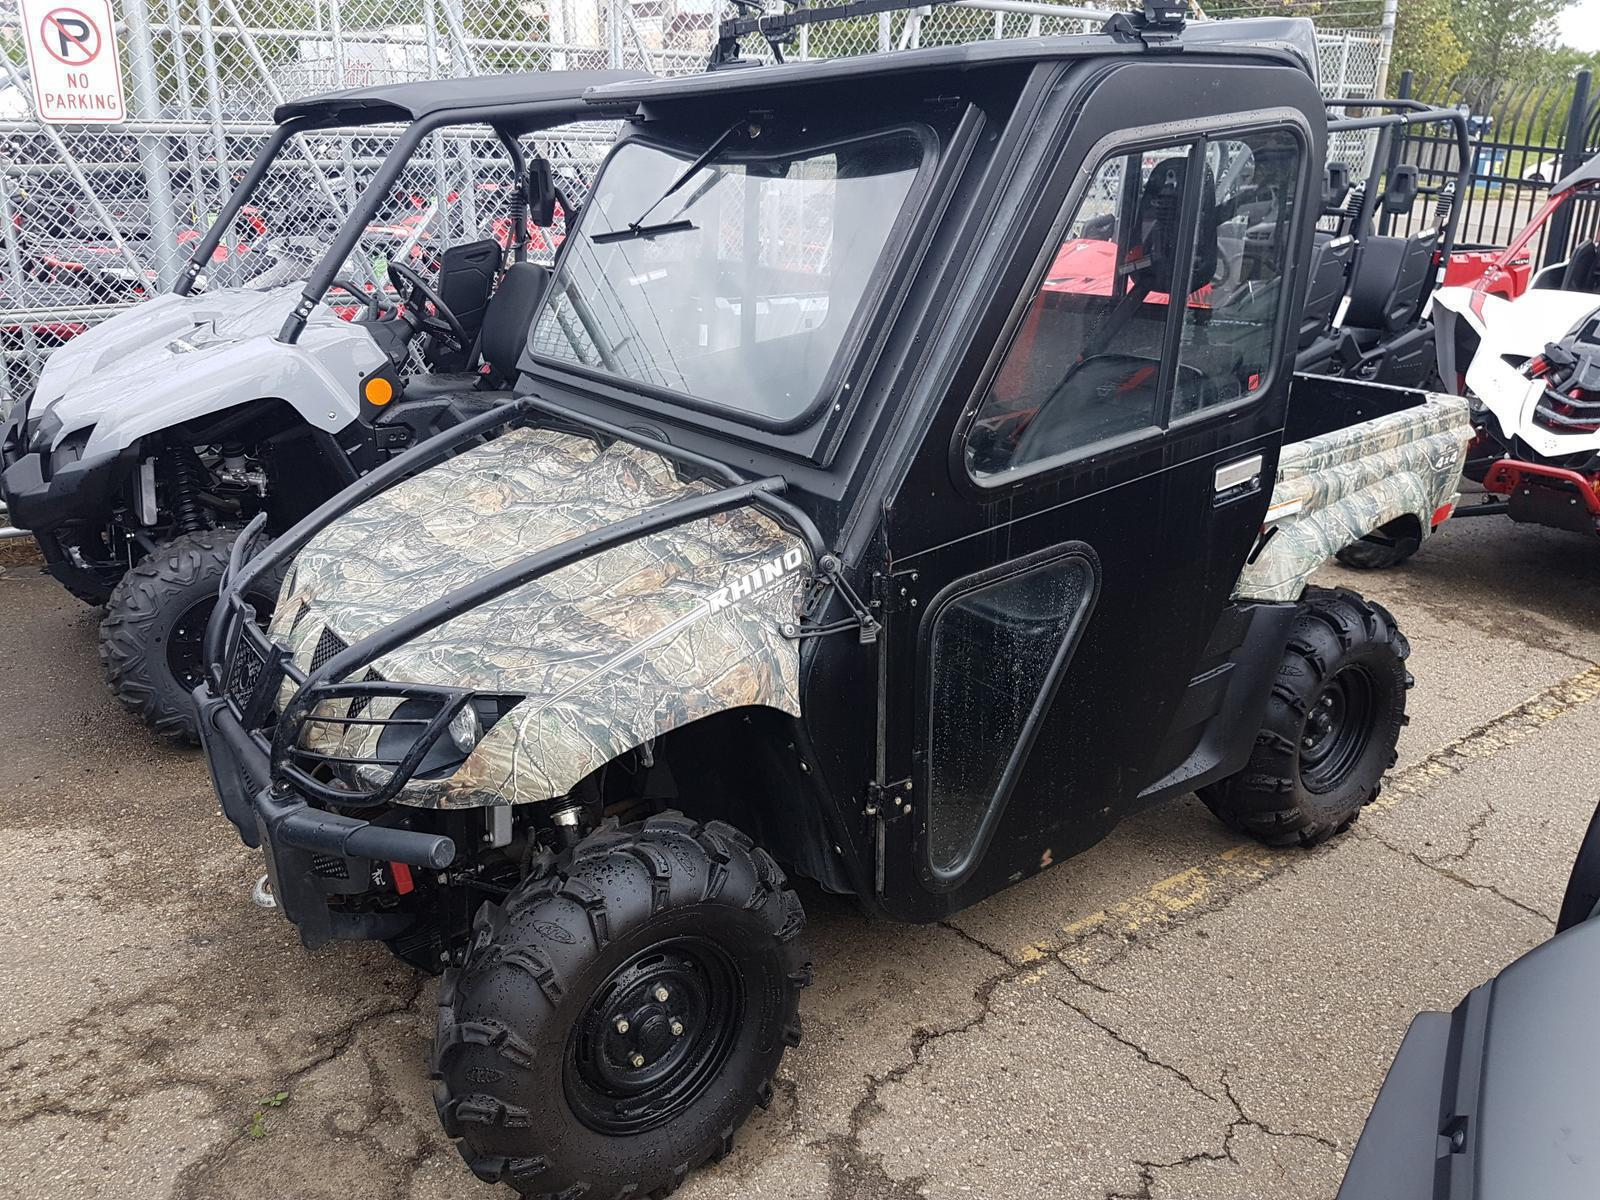 2009 Yamaha Rhino 700 Fi Auto 4x For Sale In St Albert Ab Fuel Filter Location Previous